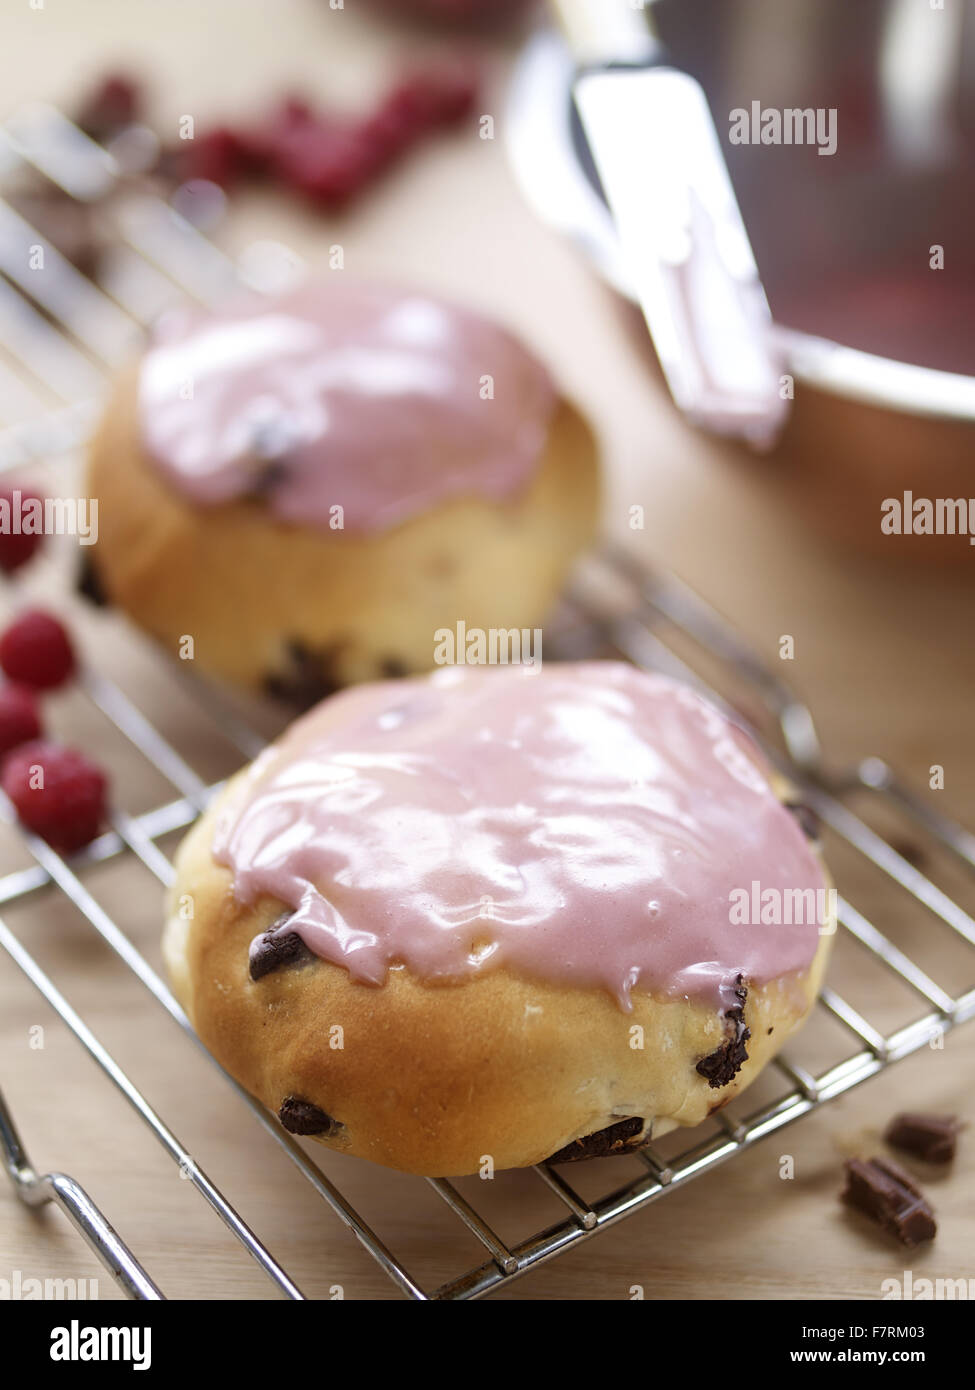 Iced buns photographed for the 2015 National Trust Summer Cookbook. - Stock Image